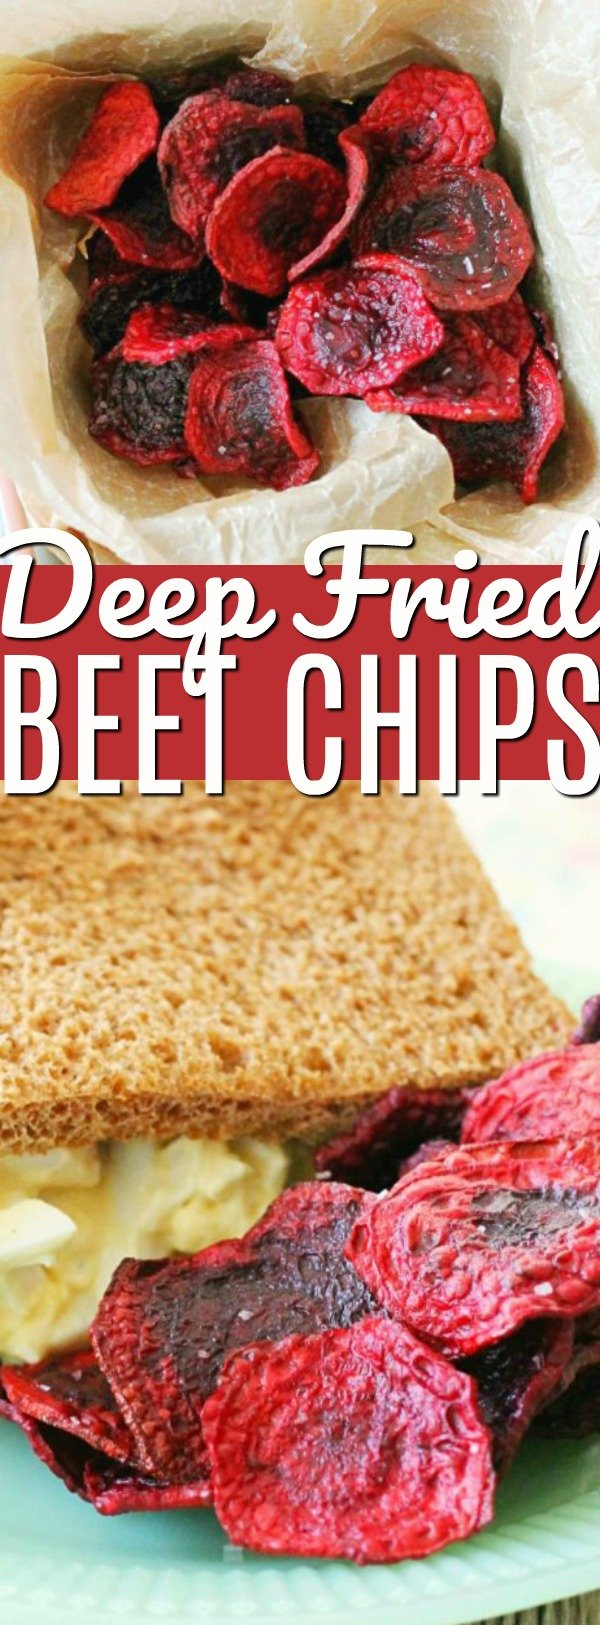 Fried Beet Chips | Foodtastic Mom